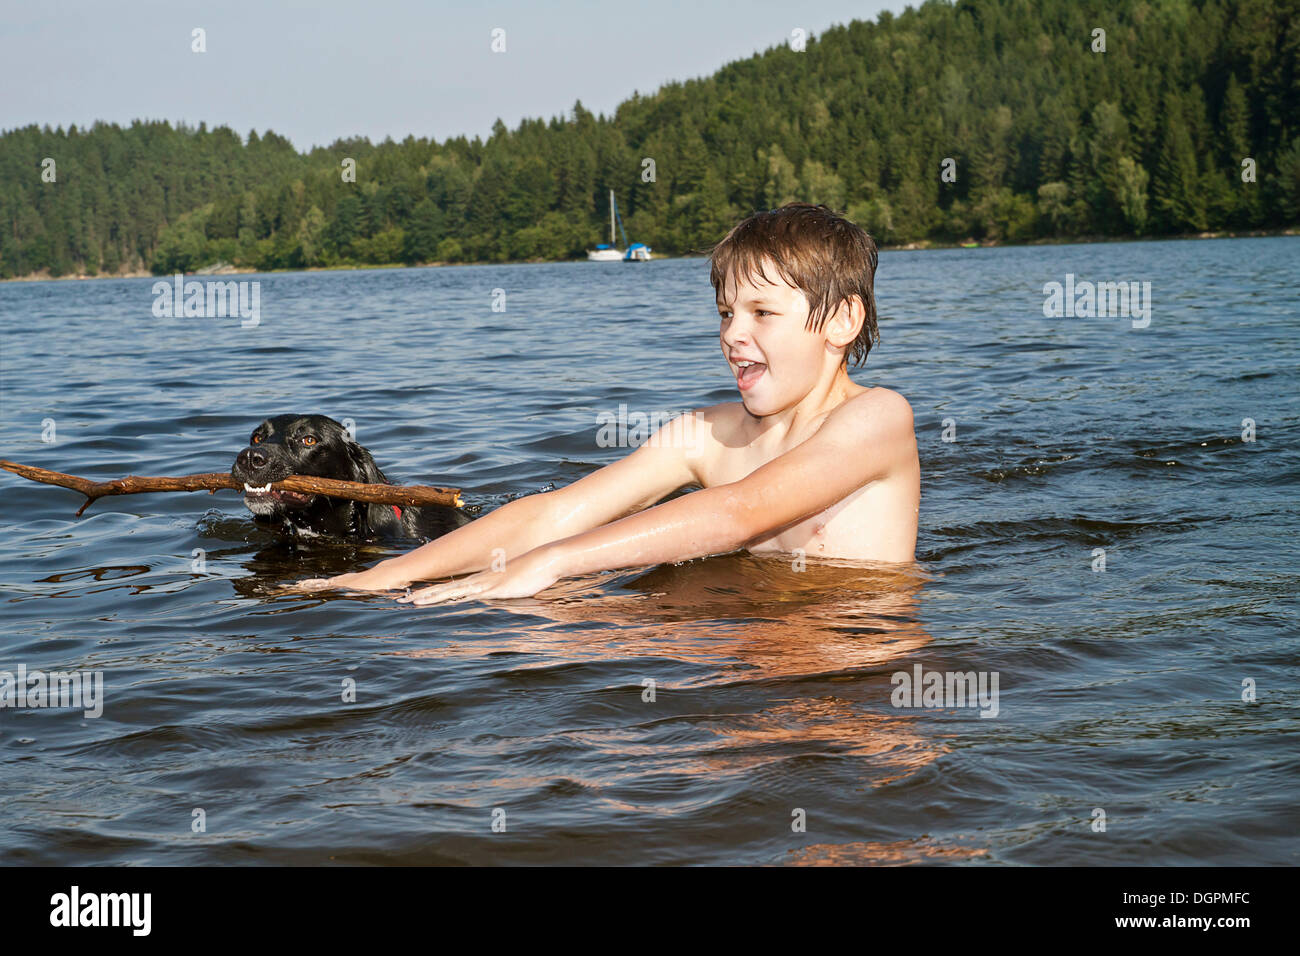 Lake Toys For Boys : Boy playing with his hunting dog in a lake stock photo